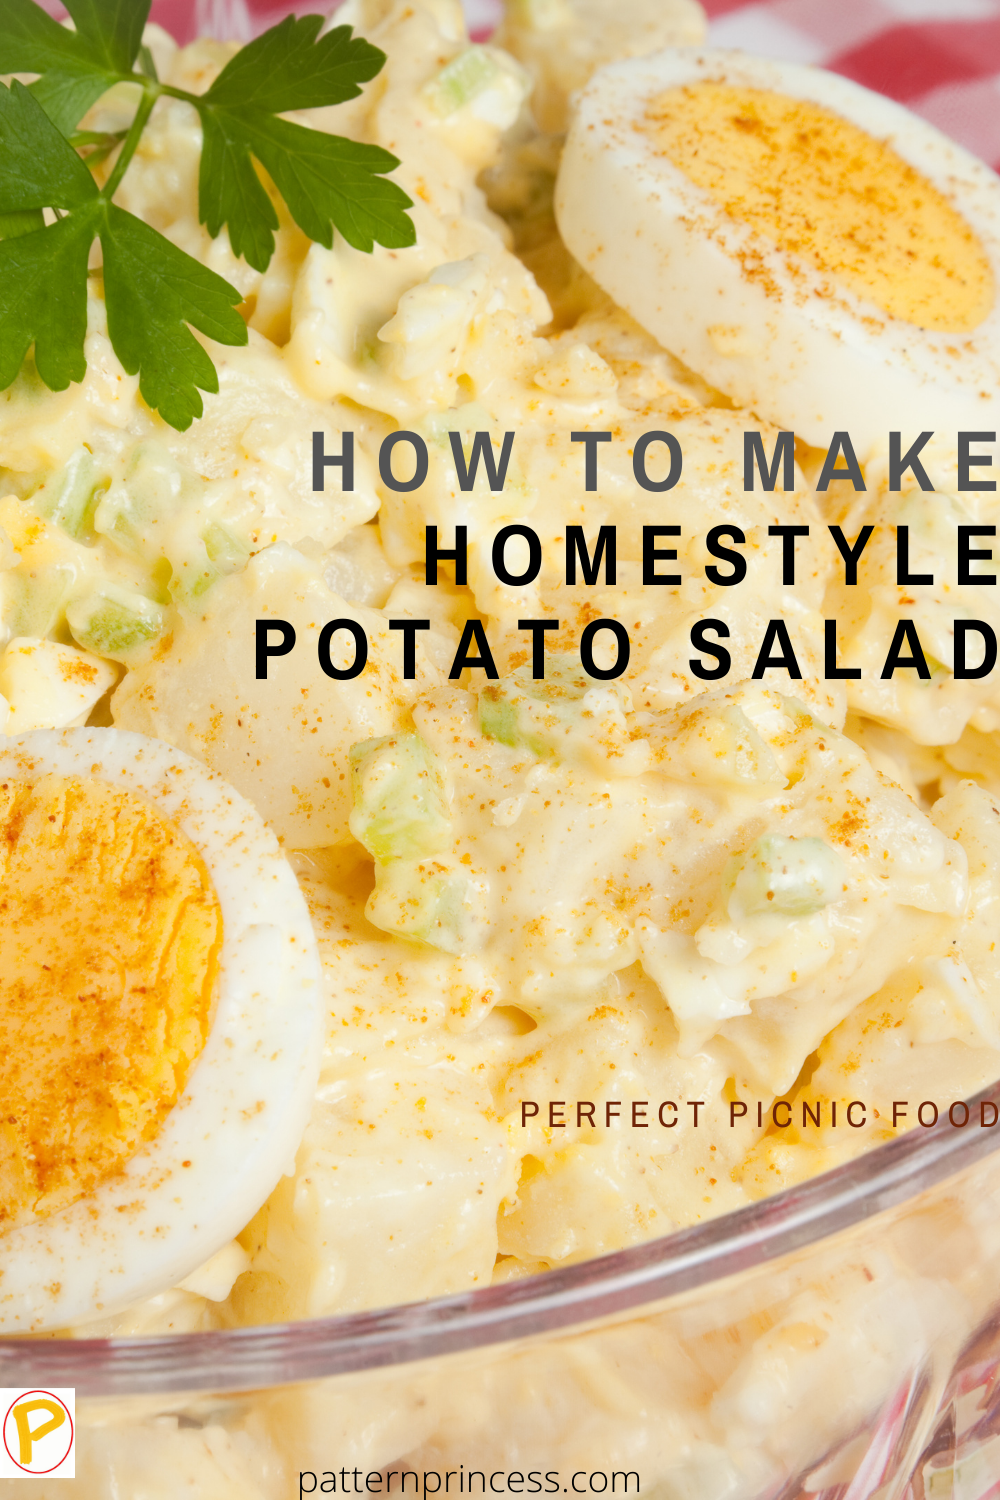 How to Make Homestyle Potato Salad